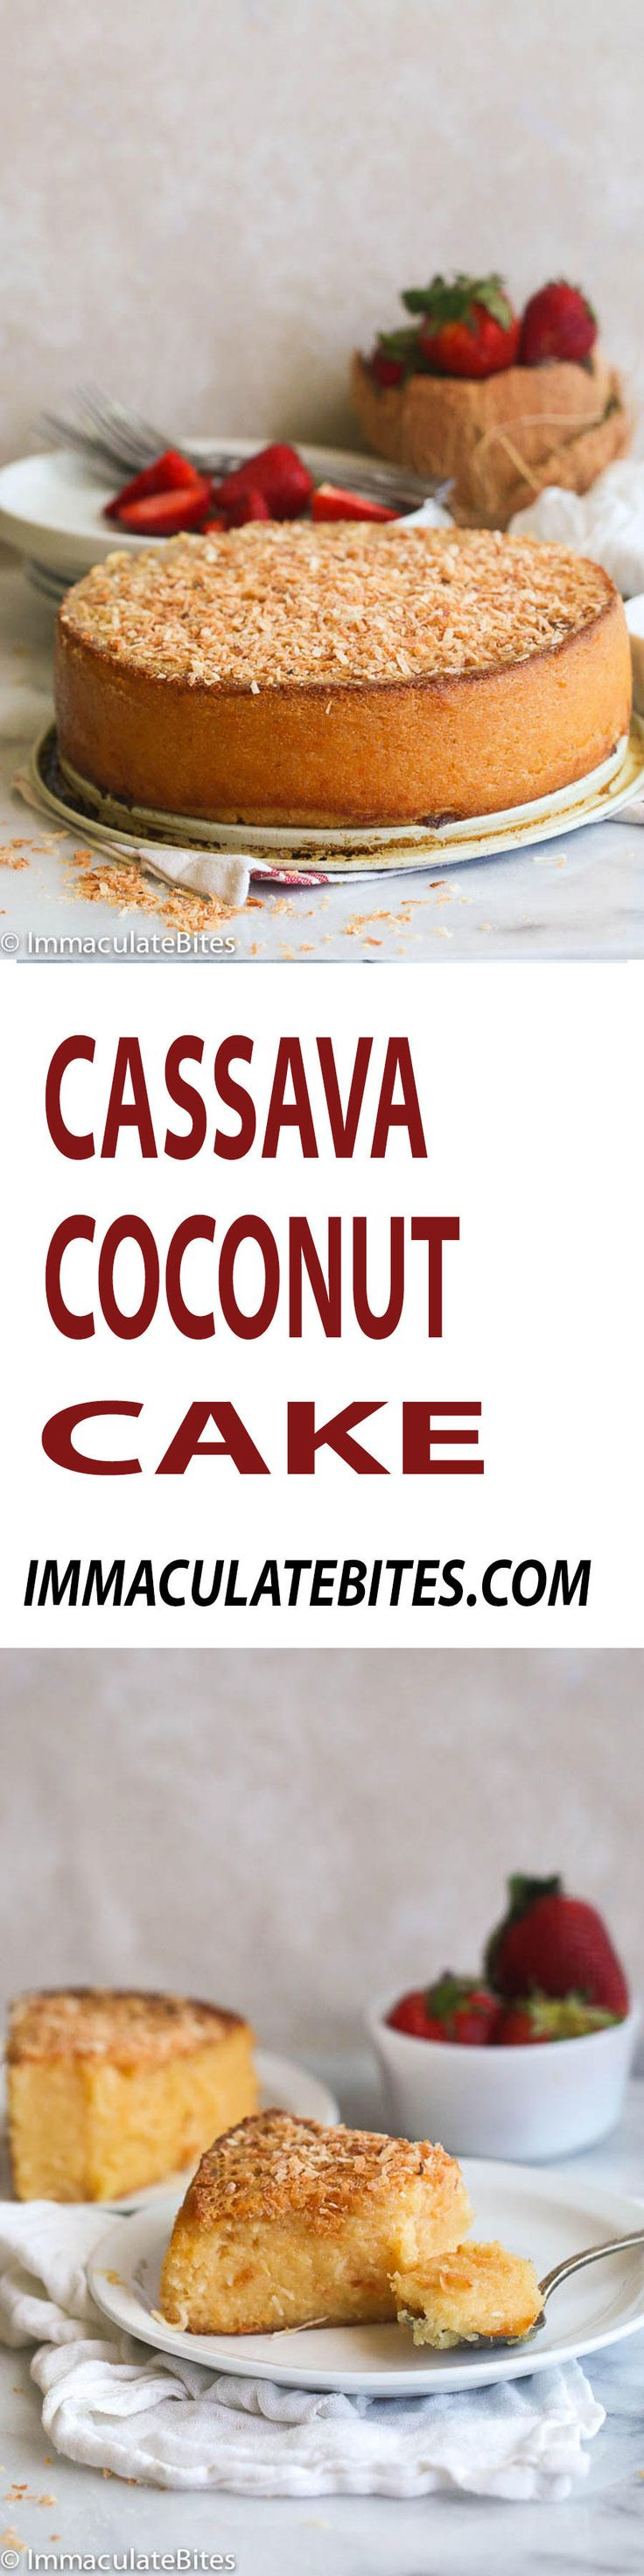 Cassava Coconut Cake- Easy yet Sumptuous Gluten free cake made  with condensed and coconut milk. And it only requires 10 mins prep